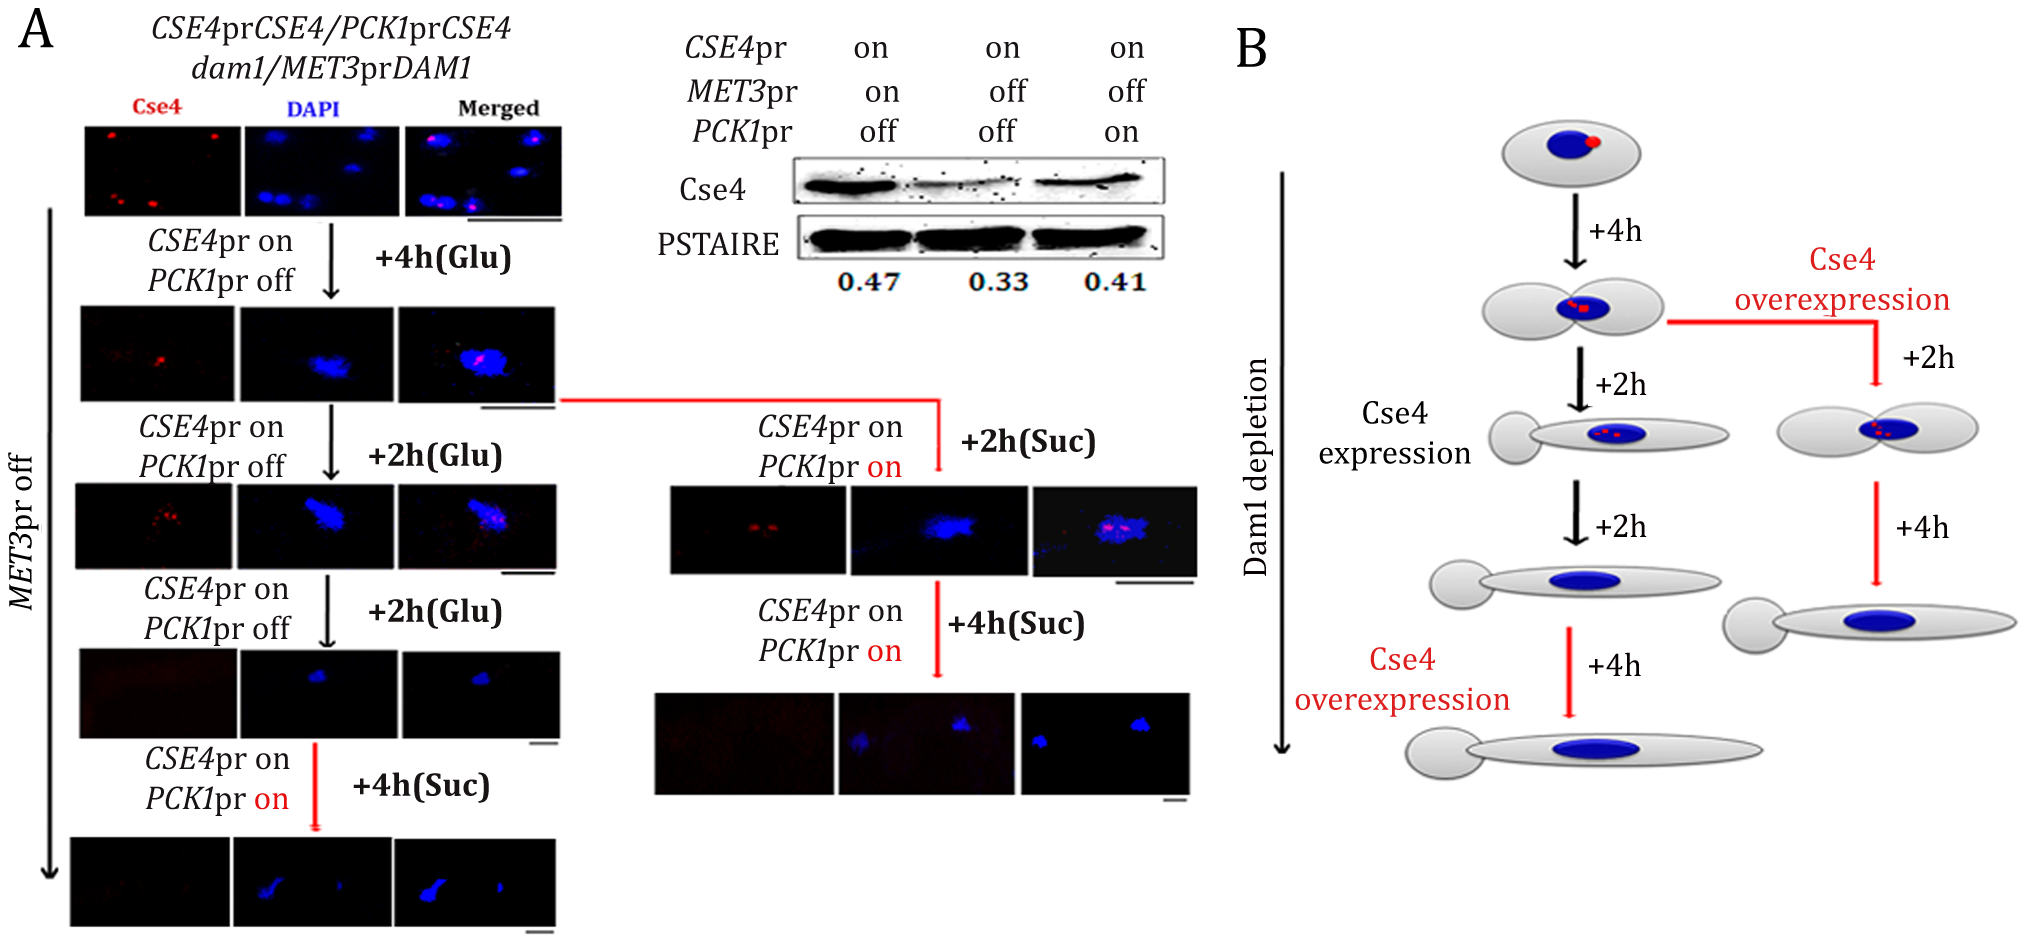 Kinetochore localization of newly synthesized CENP-A/Cse4 is compromised in absence of wild-type levels of Dam1.